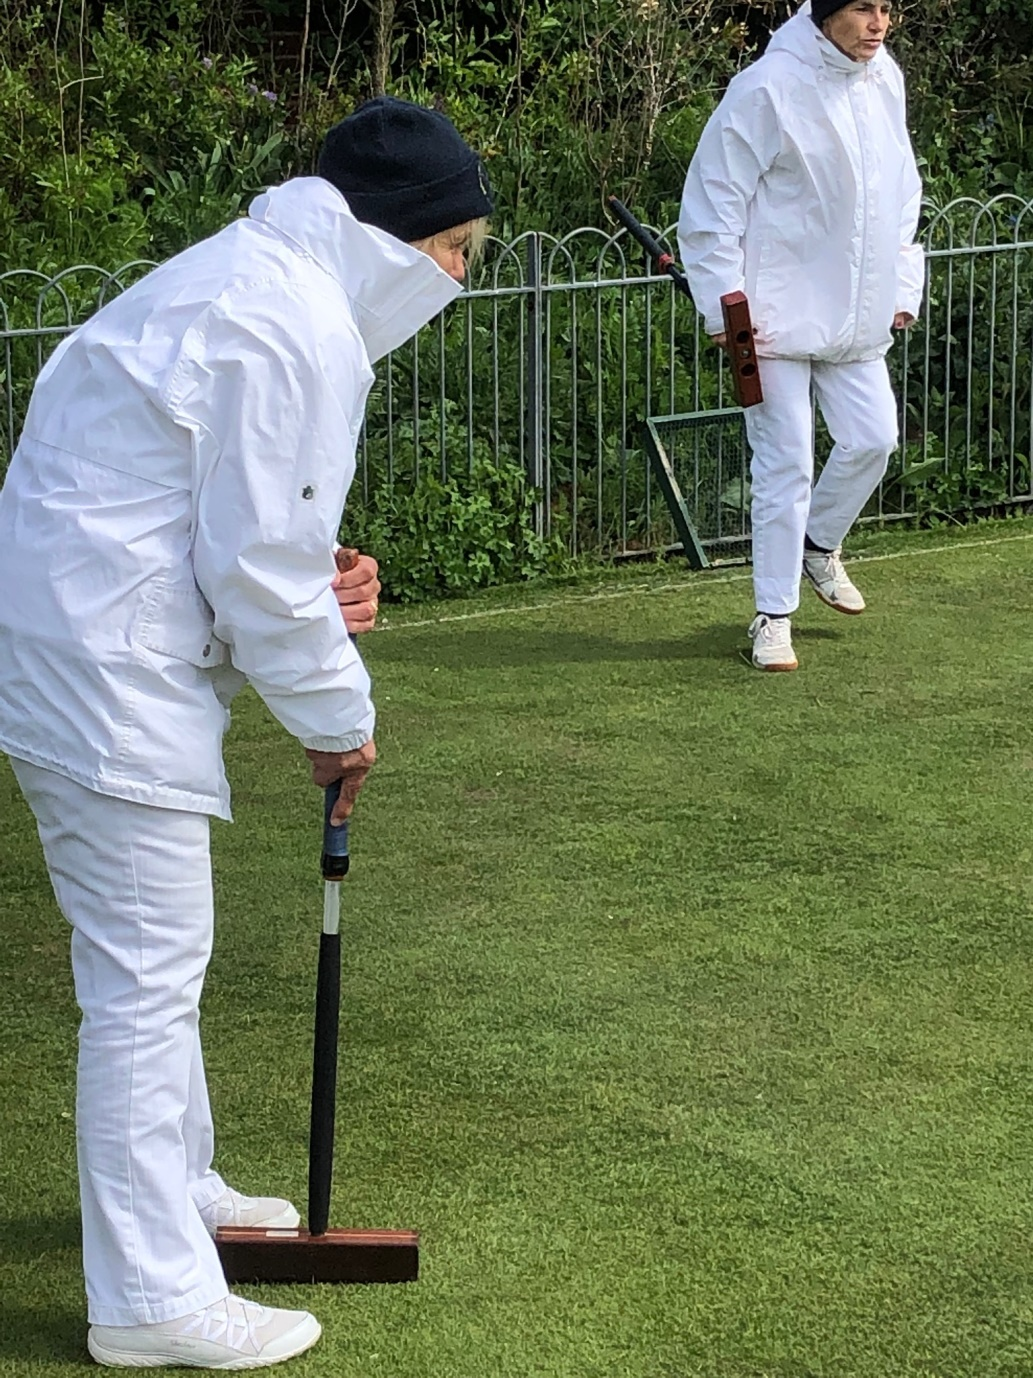 C:\Users\Brian\Documents\My Documents\Dad\Croquet Club\Chairman Newsletter\May 2019\Well Wrapped Up.JPG